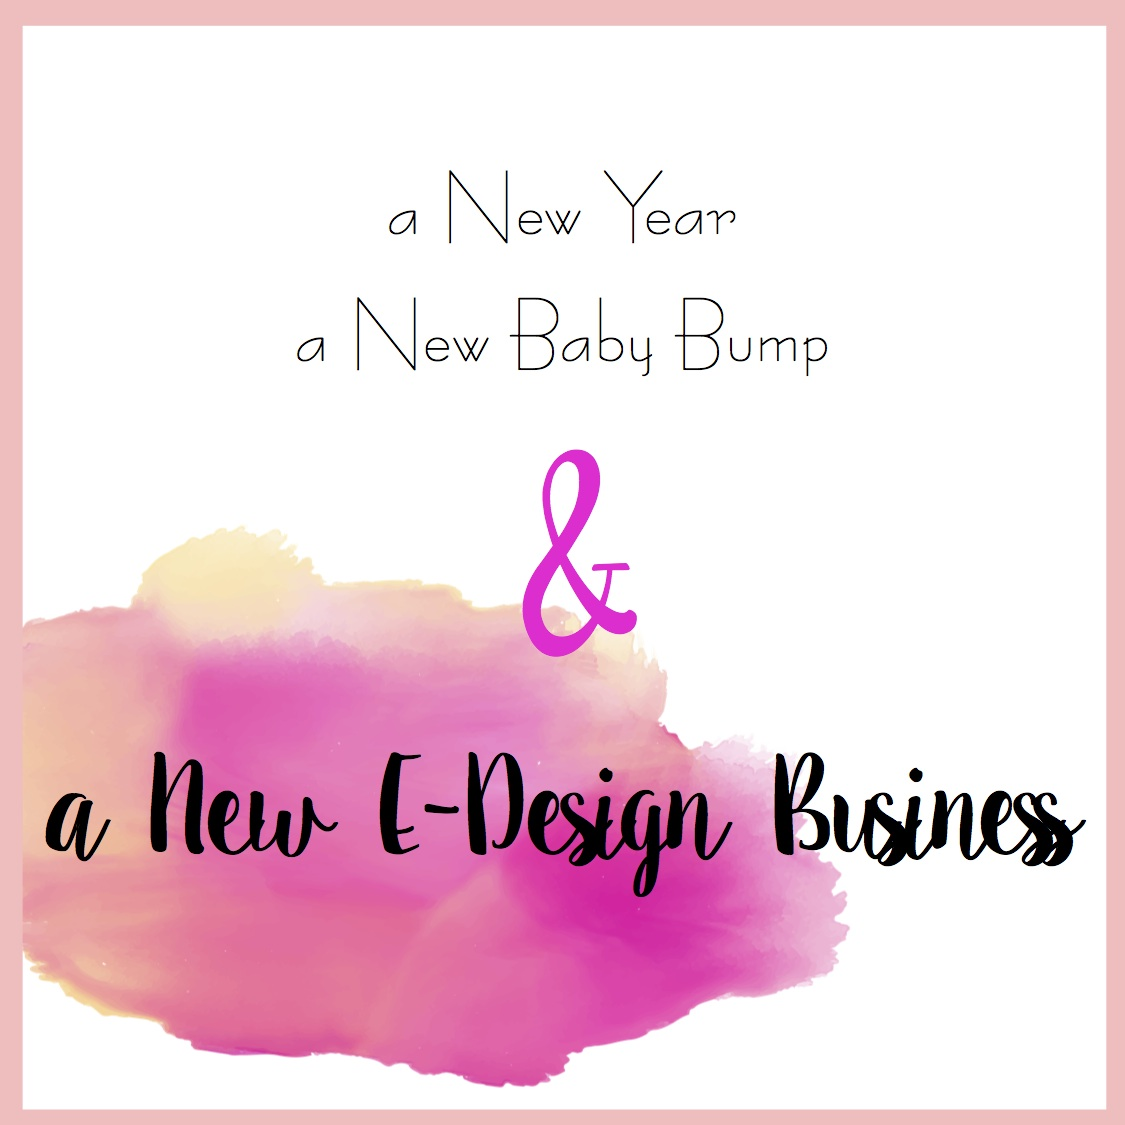 A New Year, a New Baby Bump, and a New E-Deisgn Business